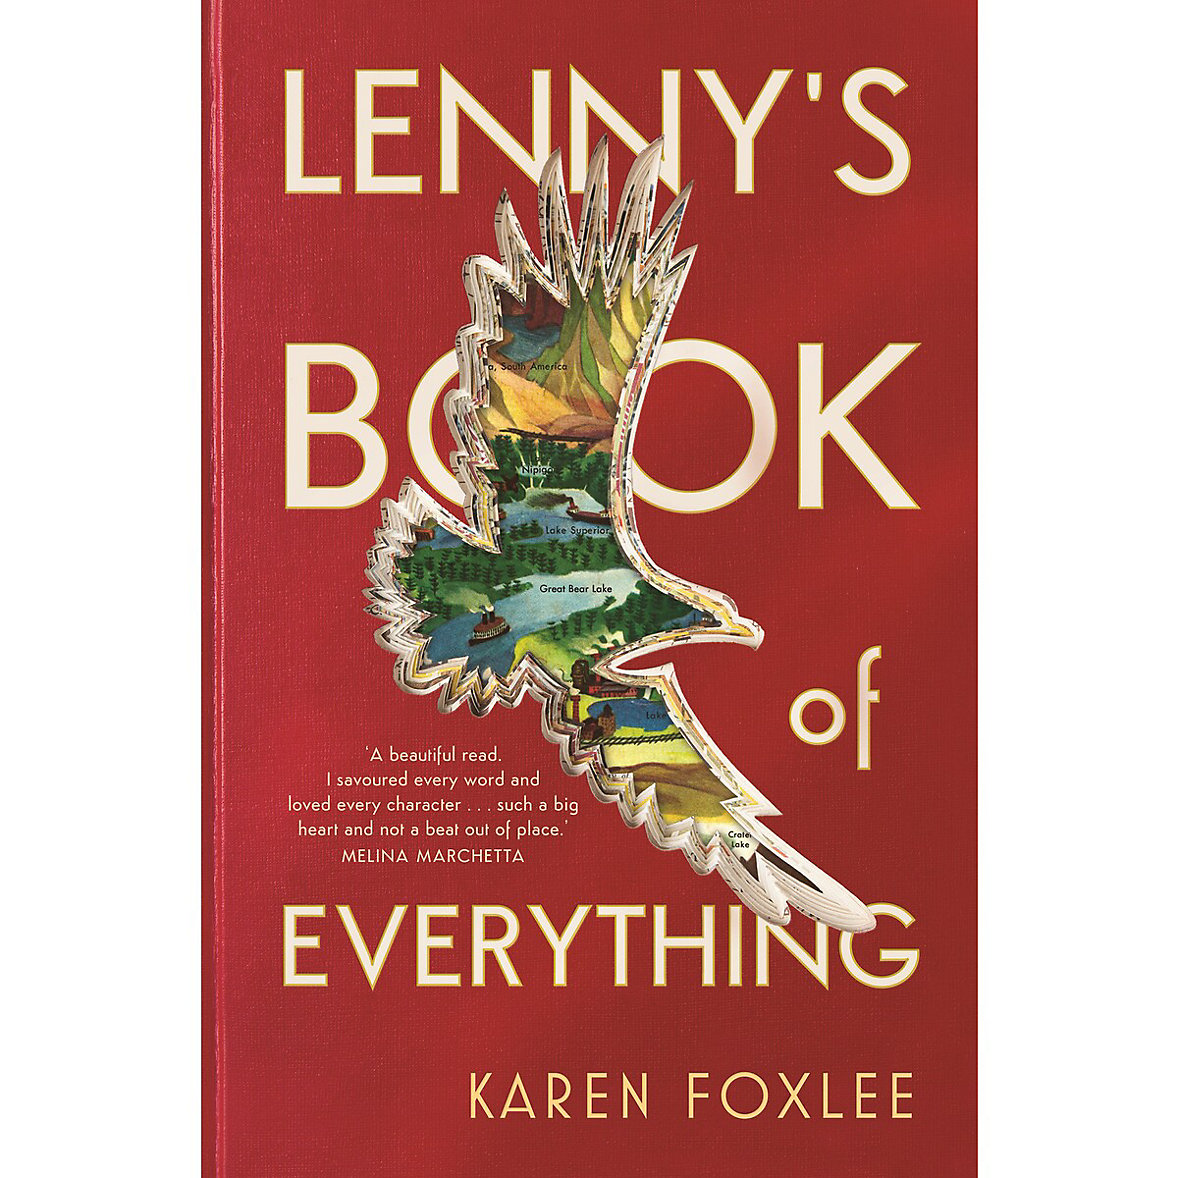 Lenny's Book of Everything - Karen Foxlee